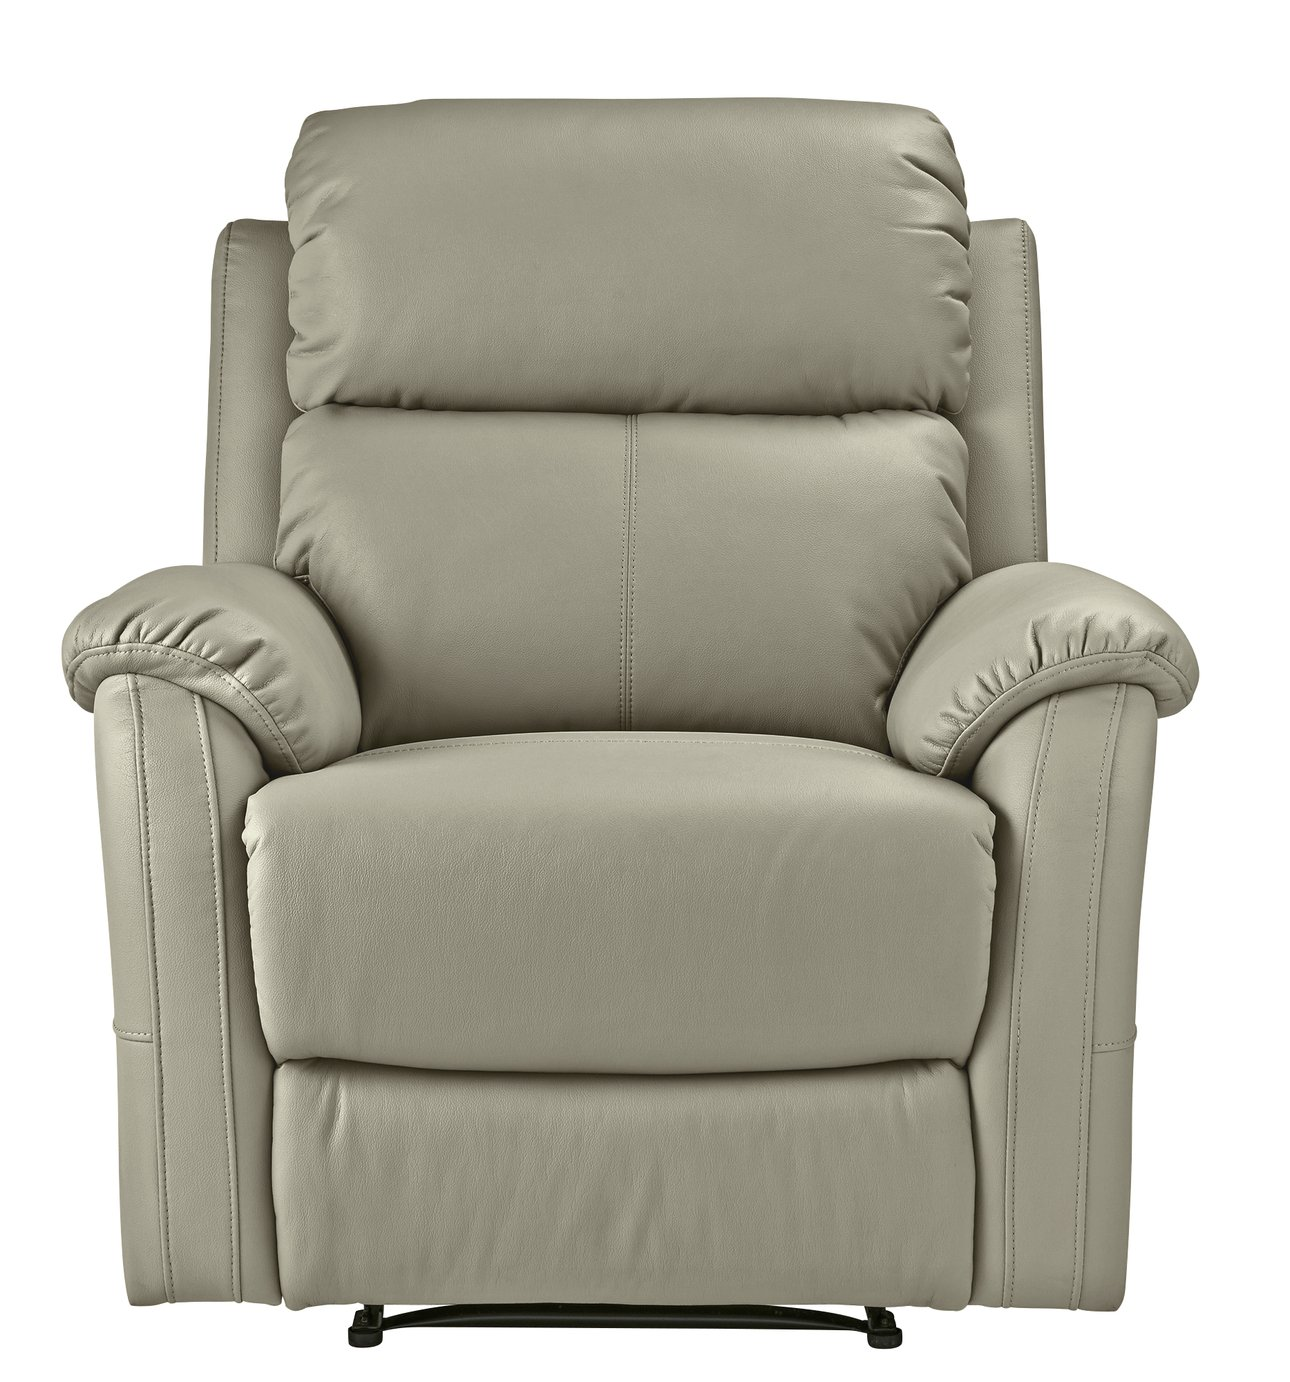 Argos Home Tyler Faux Leather Recliner Chair - Grey